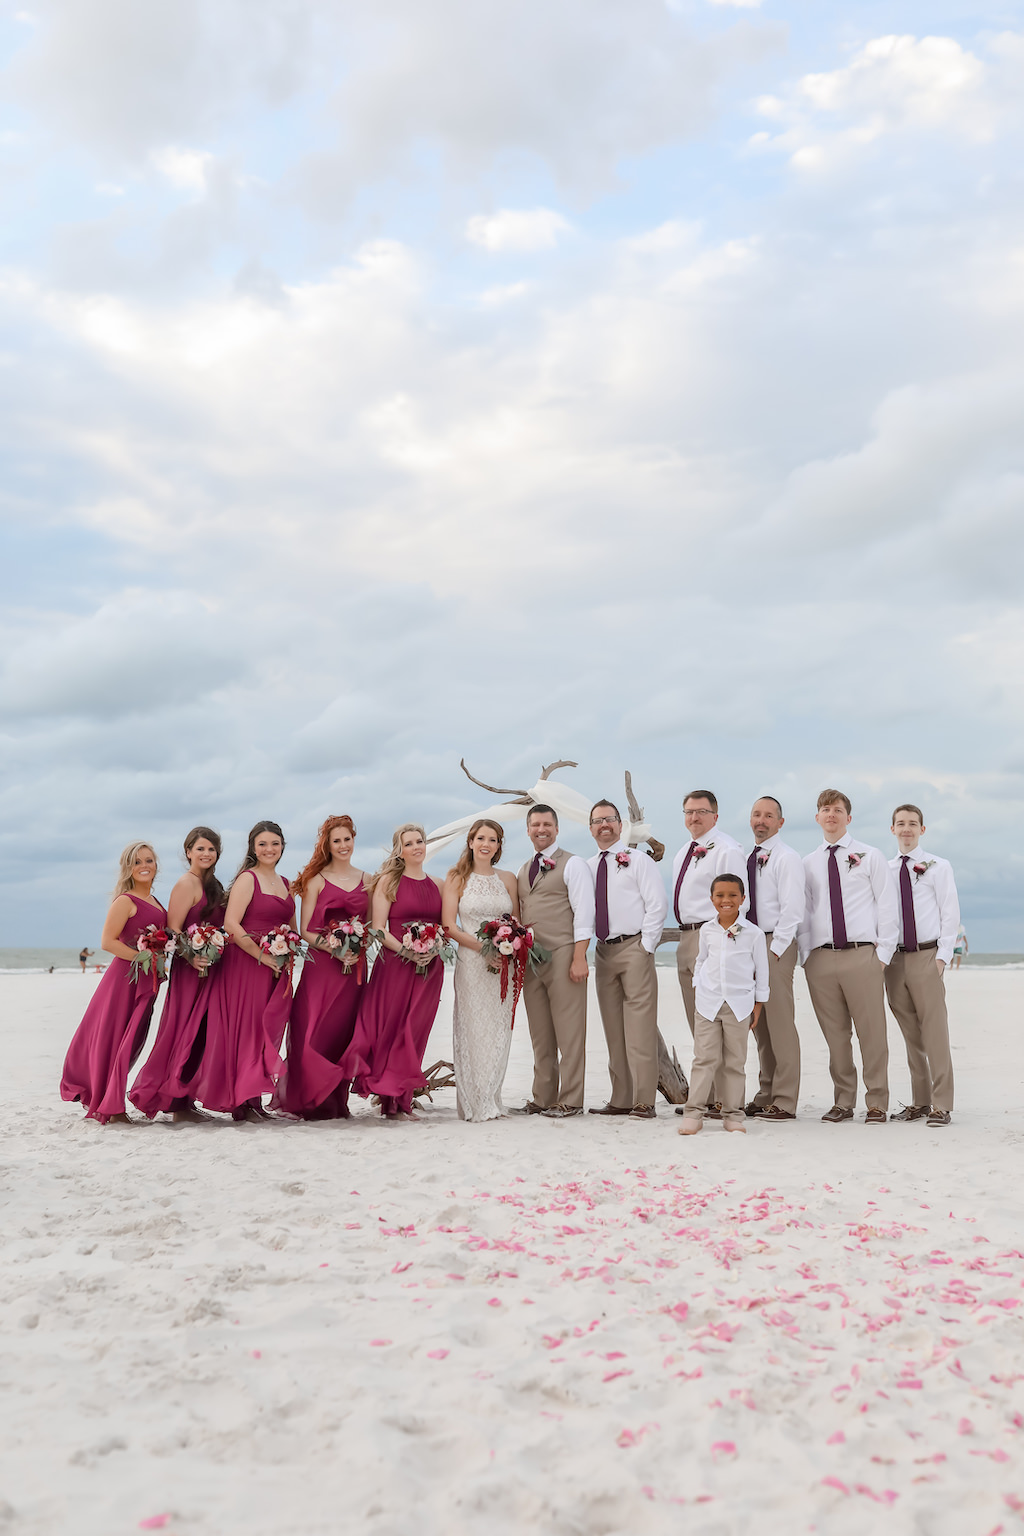 Florida Beachfront Bride, Groom and Bridal Party Wedding Portrait, Bridesmaids in Pinkish Purple Magenta Long Mismatched Style Dresses, Bride in Long Fitted Lace Halter Strap BHLDN Wedding Dress, Groom and Groomsmen in Khaki Suit Pants, White Shirts and Plum Purple Ties | Tampa Bay Wedding Photographer Lifelong Photography Studios | Clearwater Beach Hotel Wedding Venue Hilton Clearwater Beach